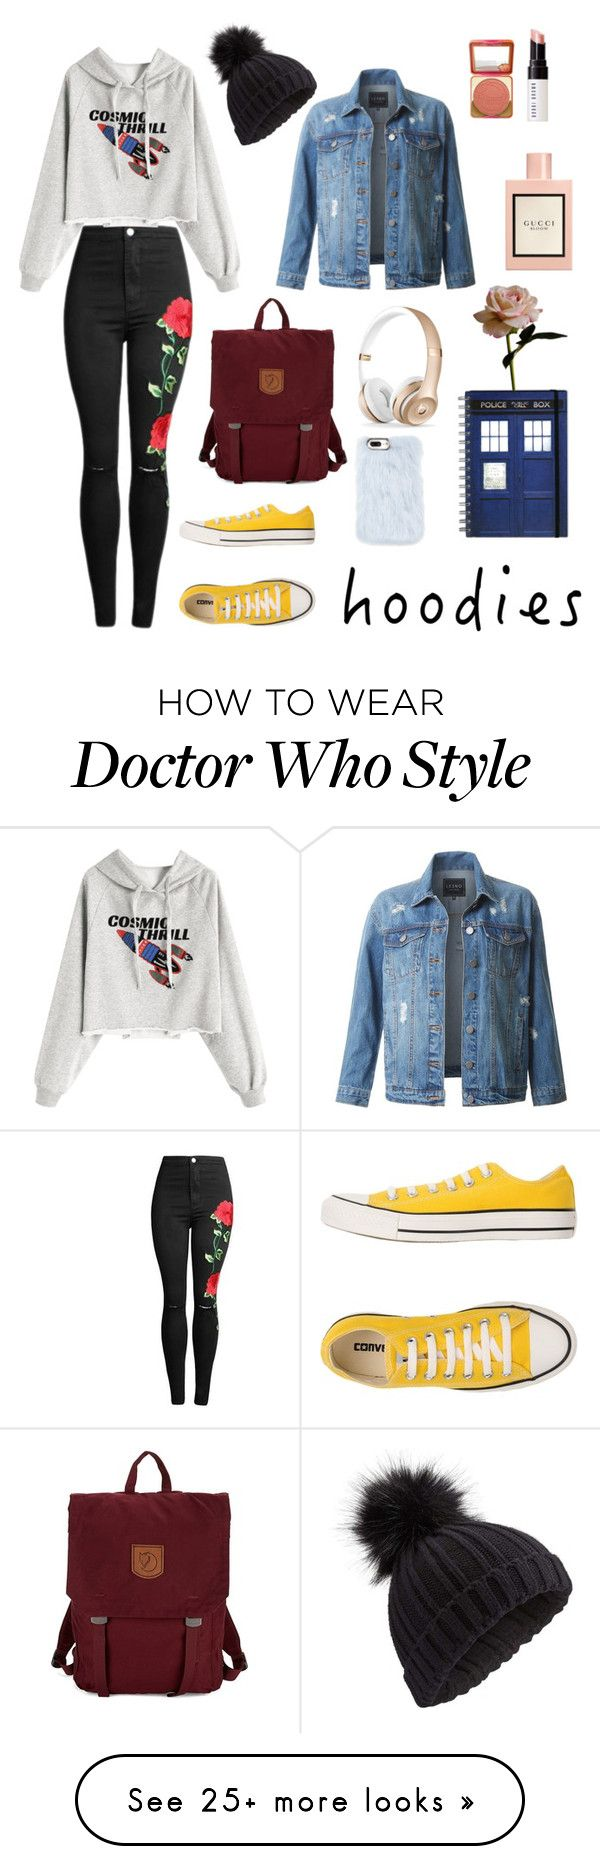 """A style for hoodie & science fiction lovers"" by luvioso on Polyvore featuring Converse, Fjällräven, Miss Selfridge, LE3NO, Skinnydip, Too Faced Cosmetics, Bobbi Brown Cosmetics, Gucci and Abigail Ahern"